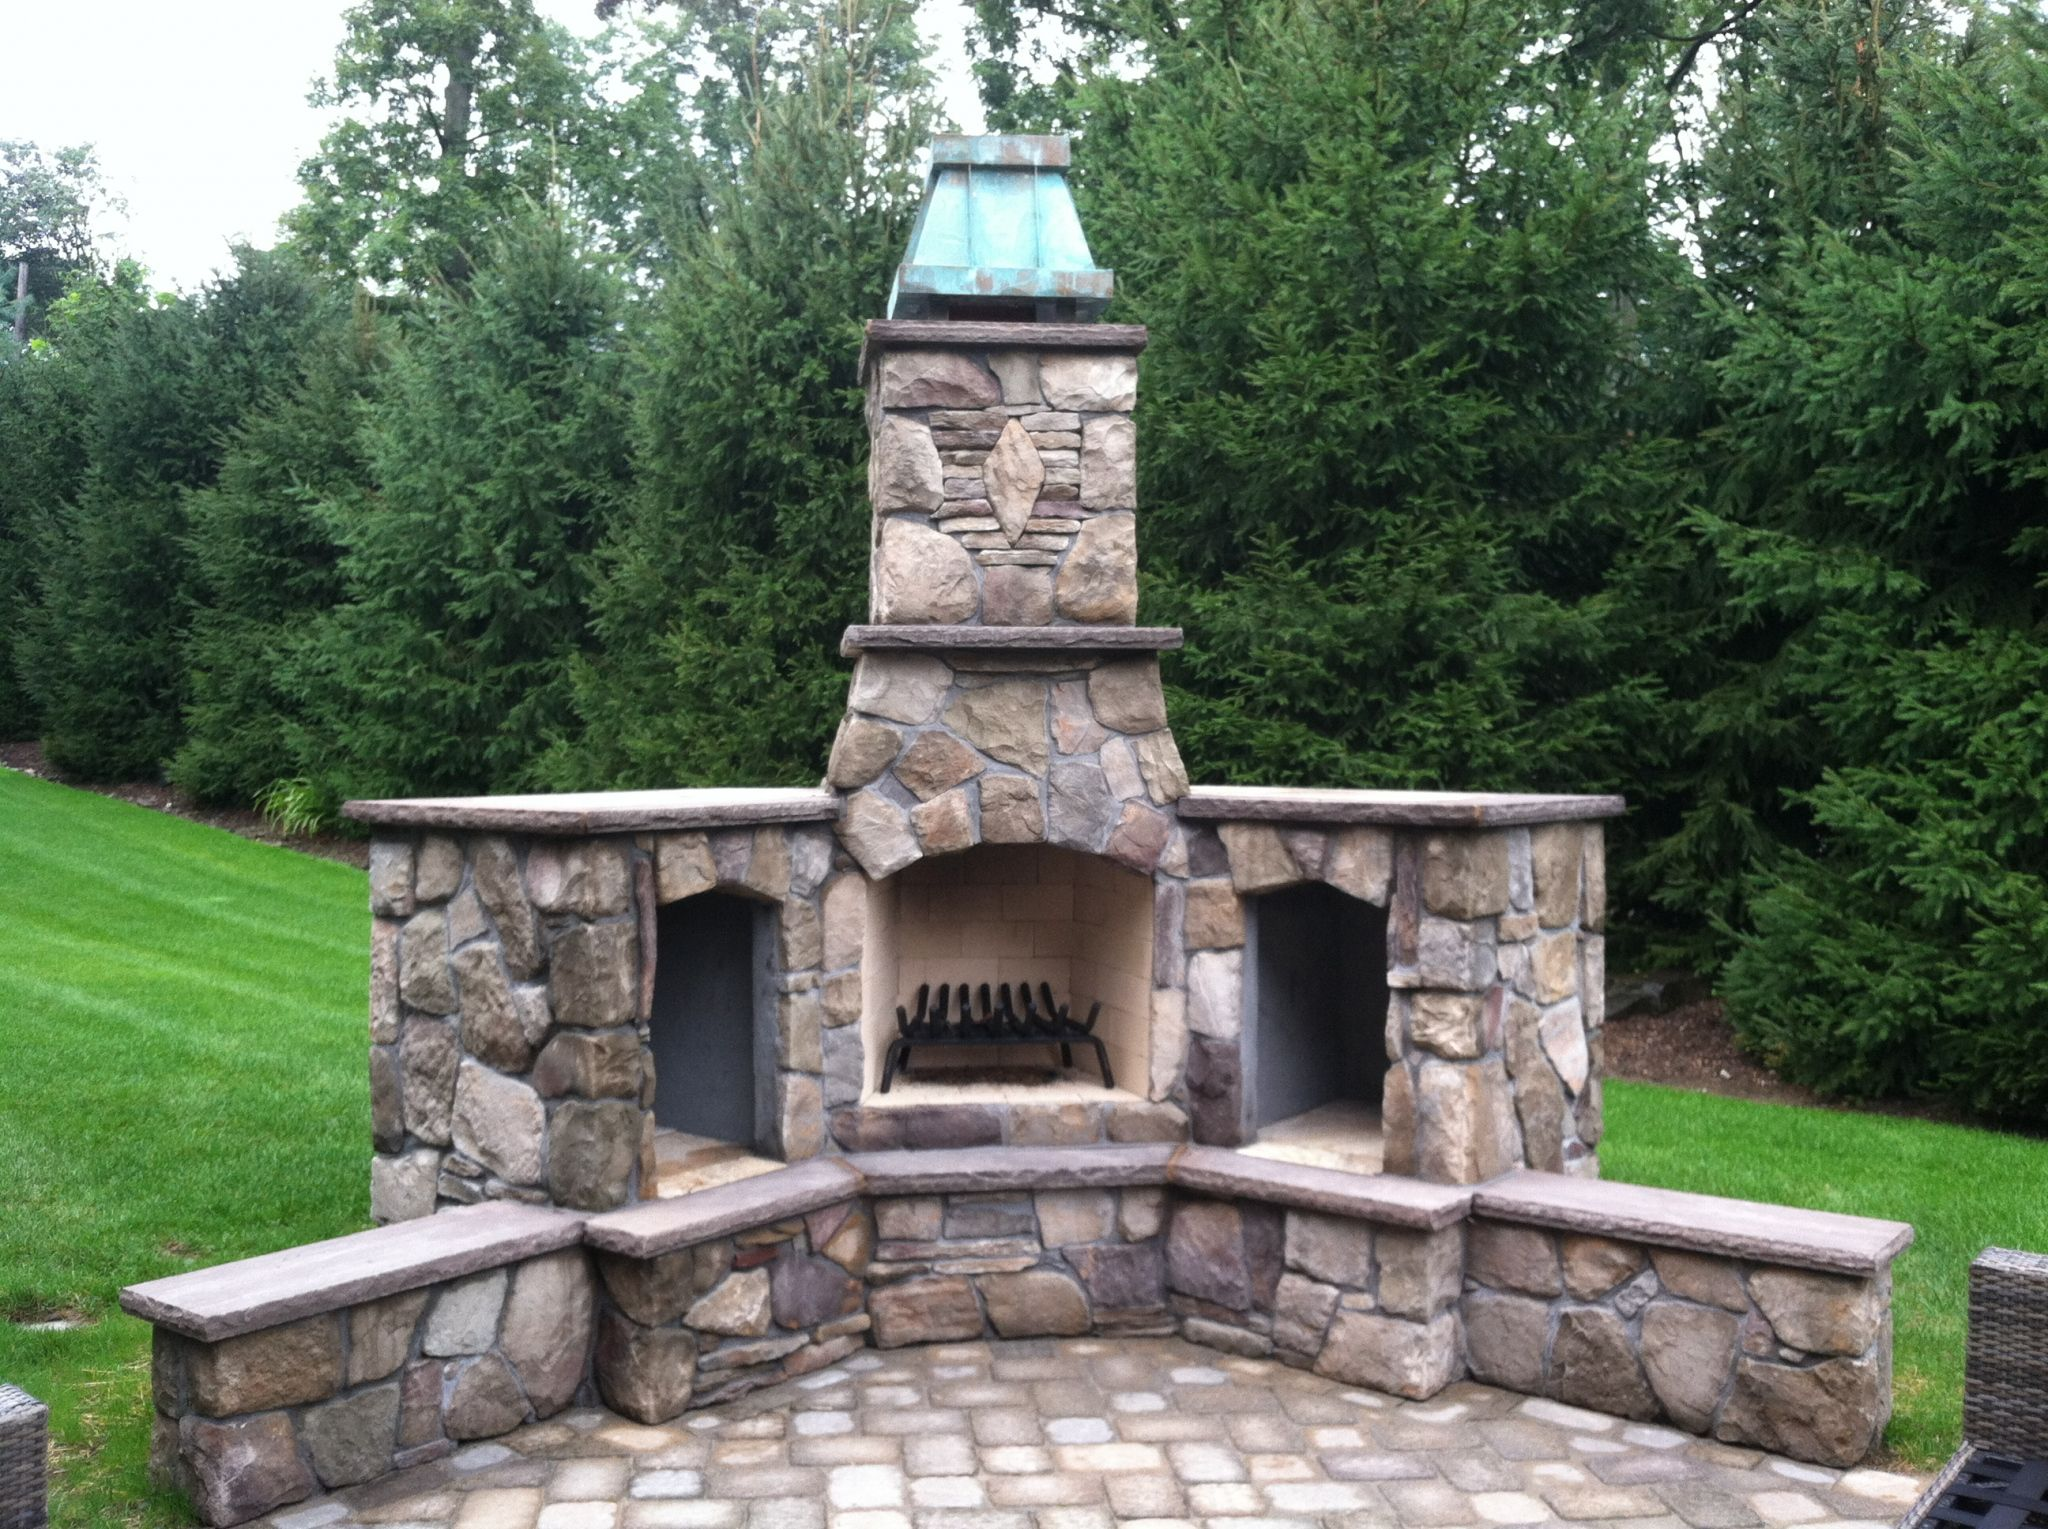 pin by annora on home interior pinterest outdoor chimney cap rh pinterest com Outdoor Stone Fireplace Chimney Cap Outdoor Stone Fireplace Chimney Cap